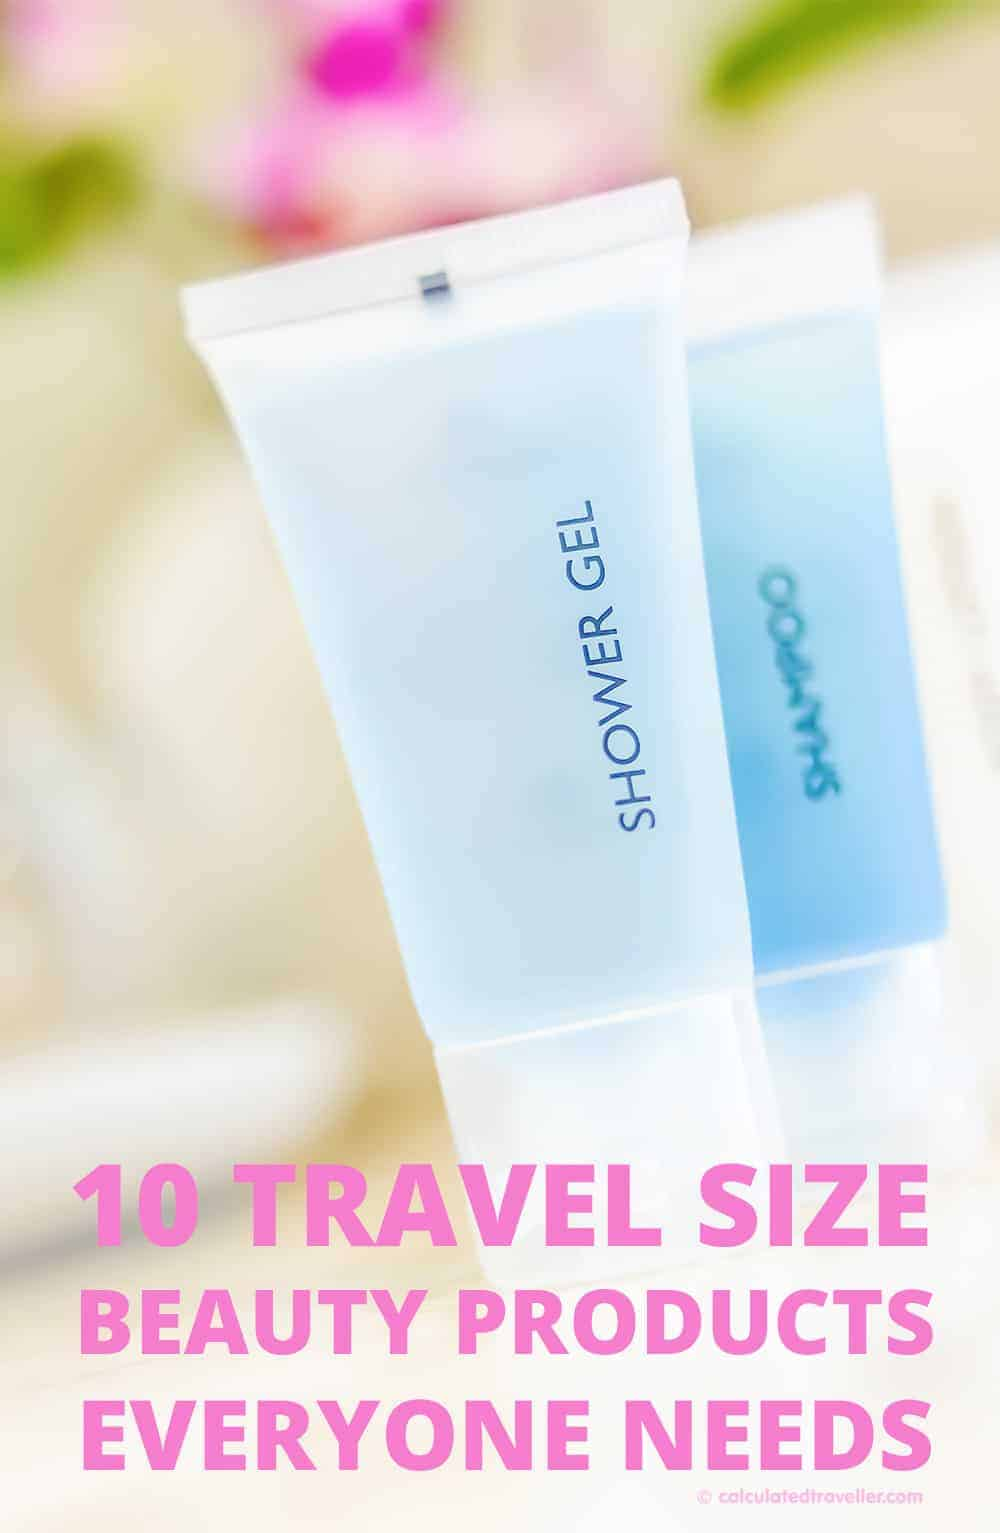 10 Travel Size Beauty Products Everyone Needs | Travel | Packing | Beauty | Toiletry | Products